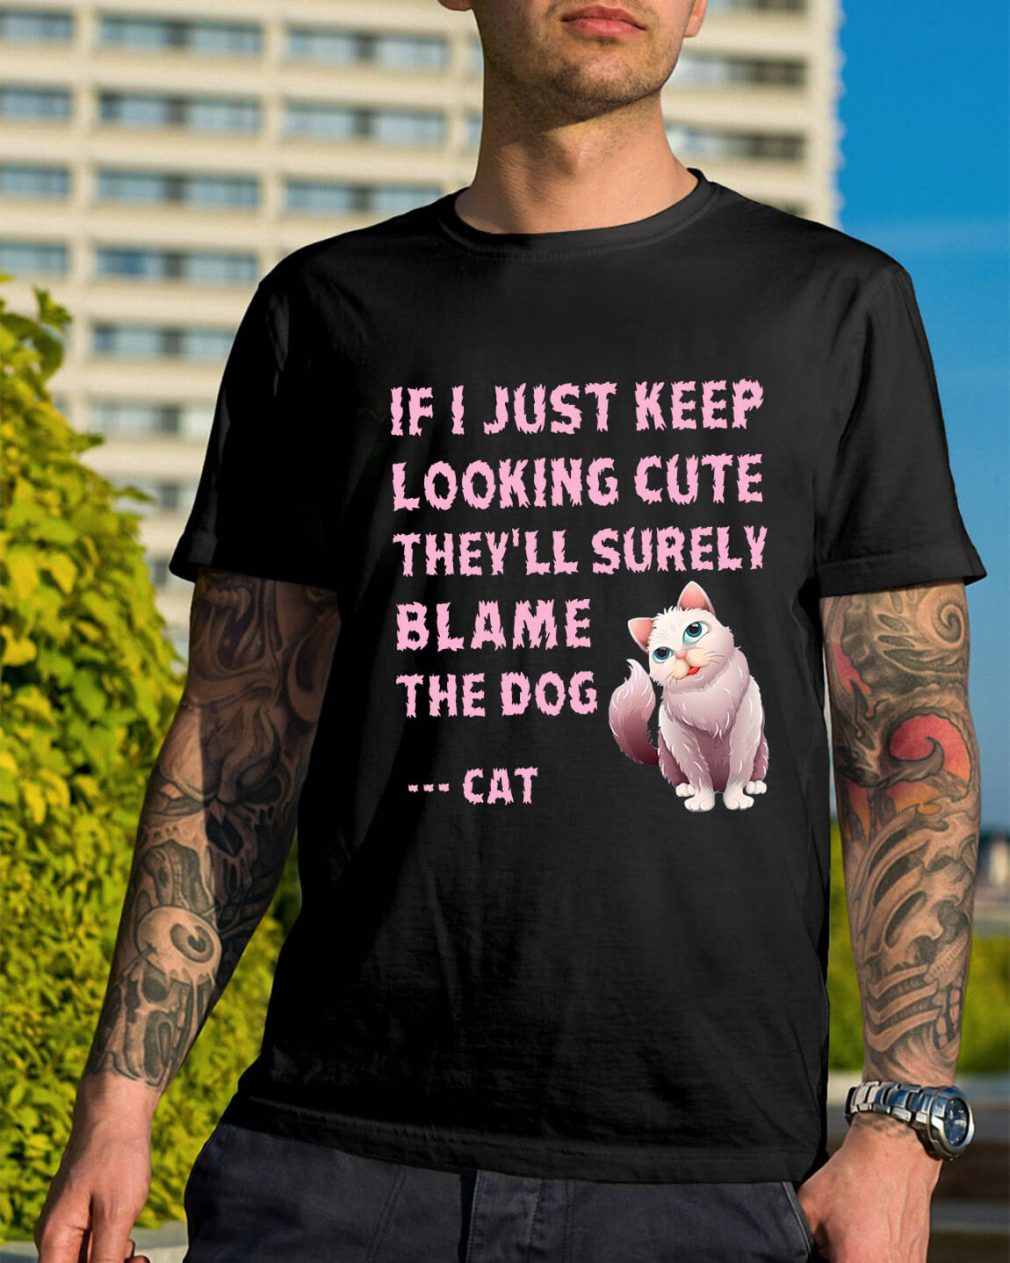 If I just keep looking cute they'll surely blame the dog cat shirt